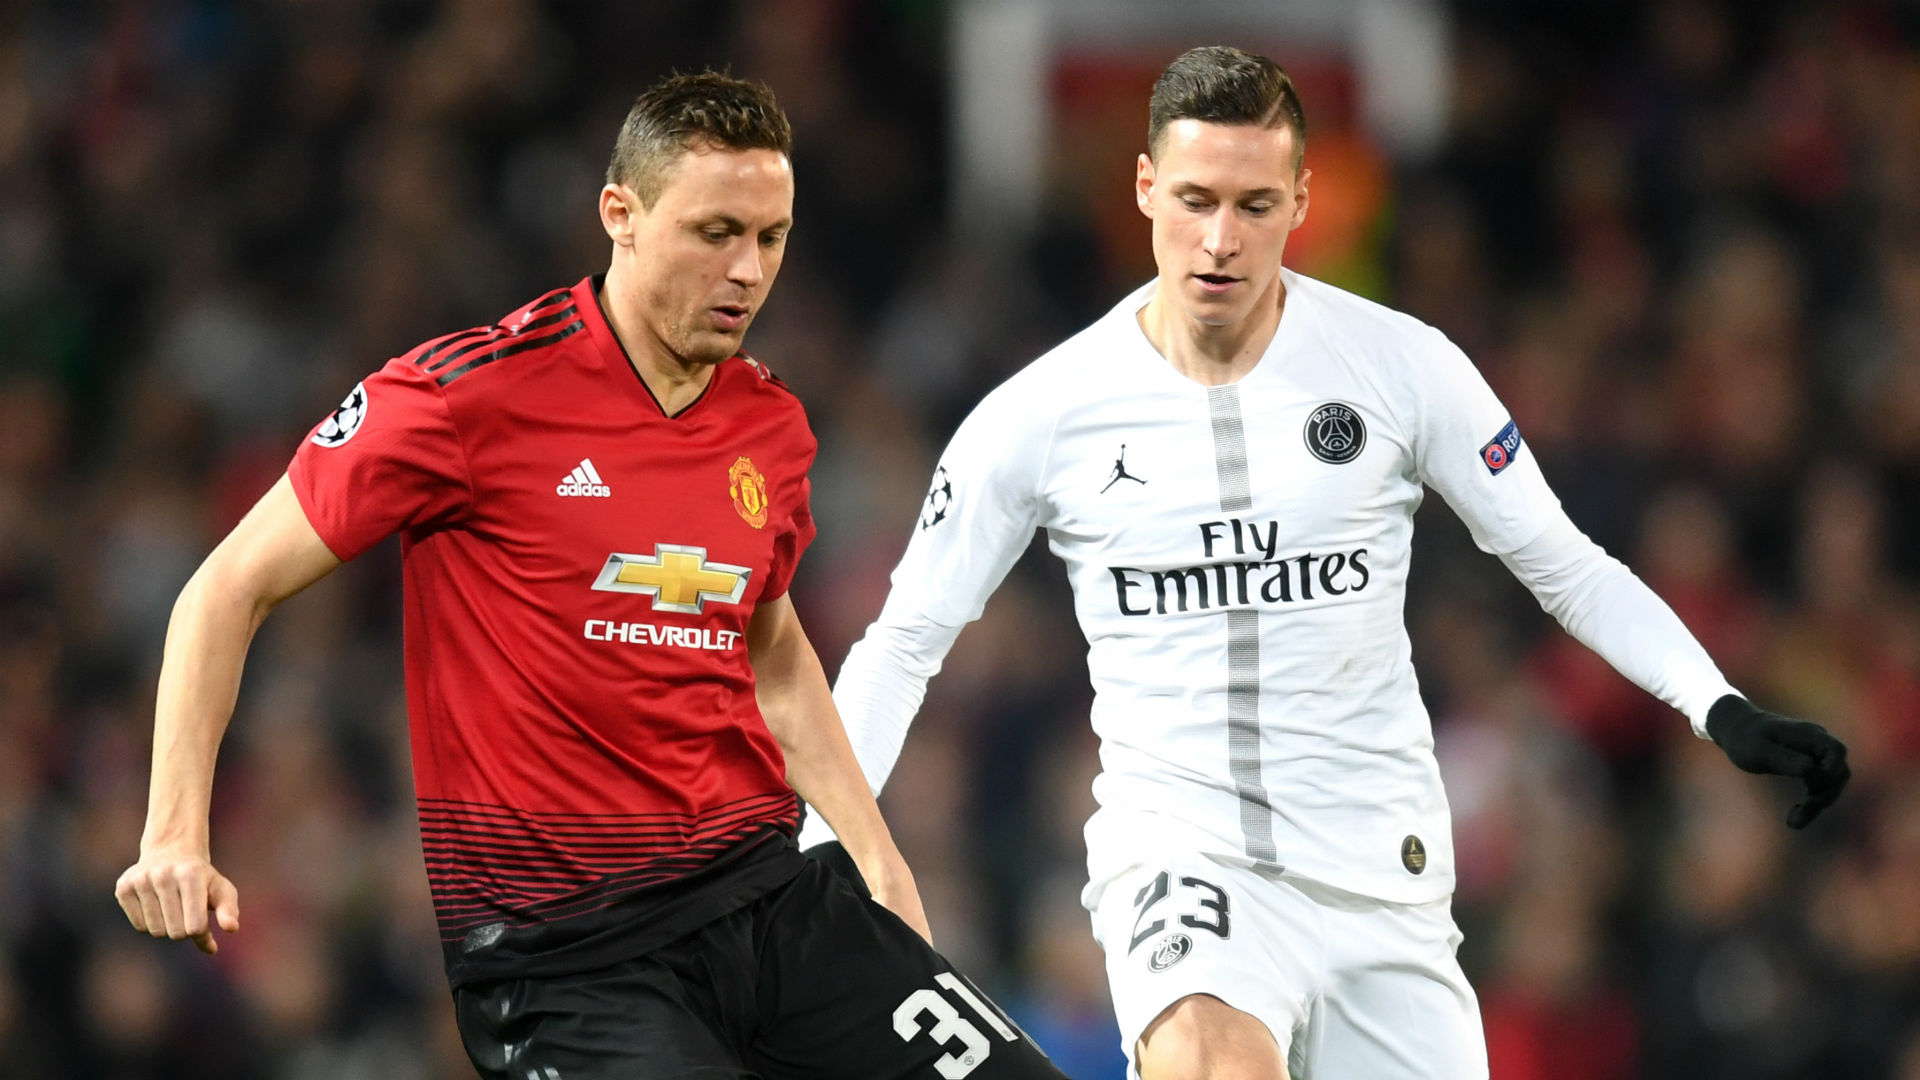 United given 'reality check' against Paris St Germain, says Solskjaer